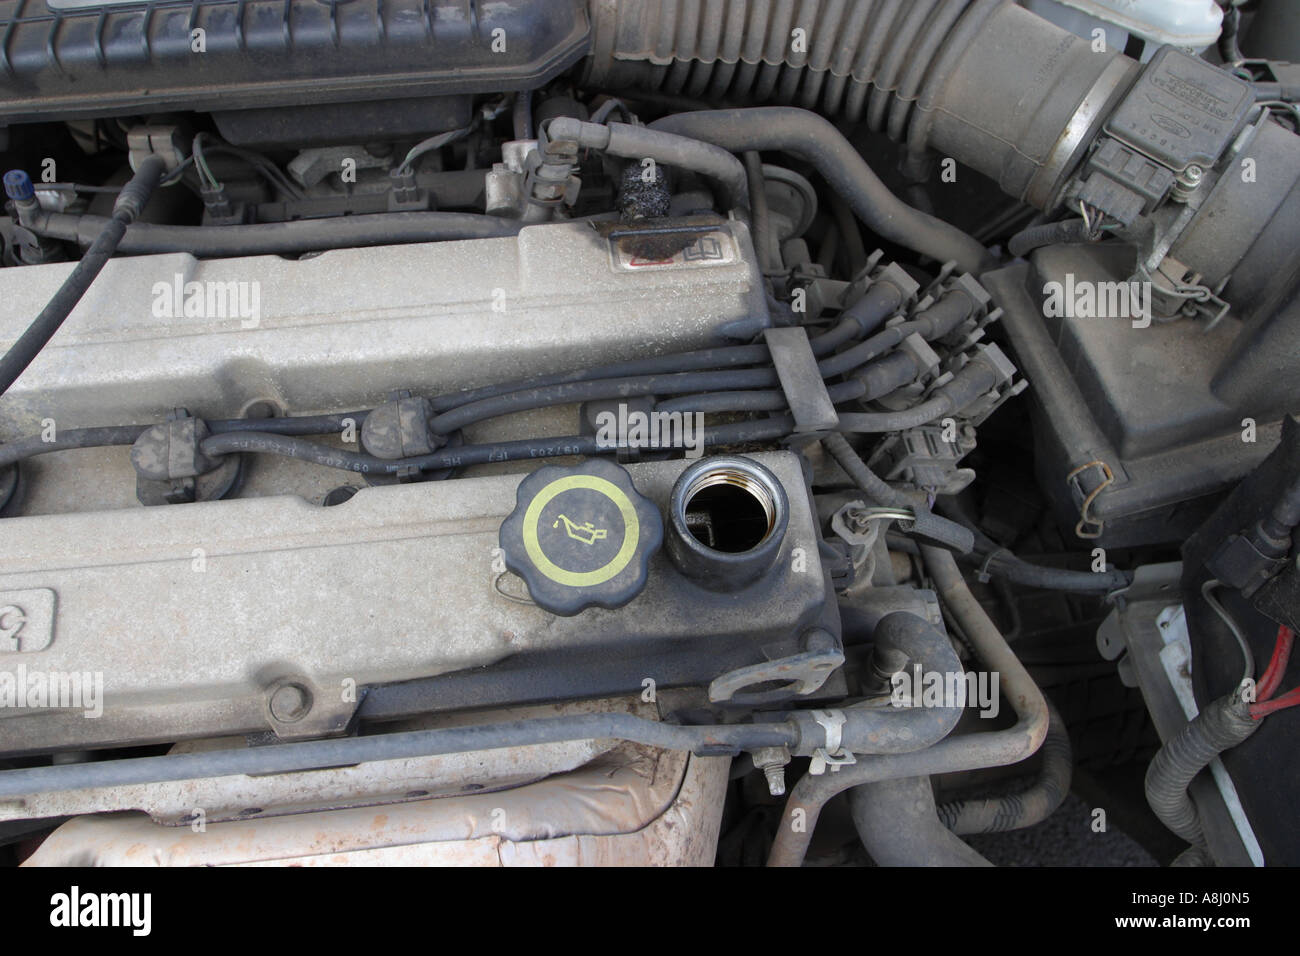 Before checking or servicing in the engine compartment